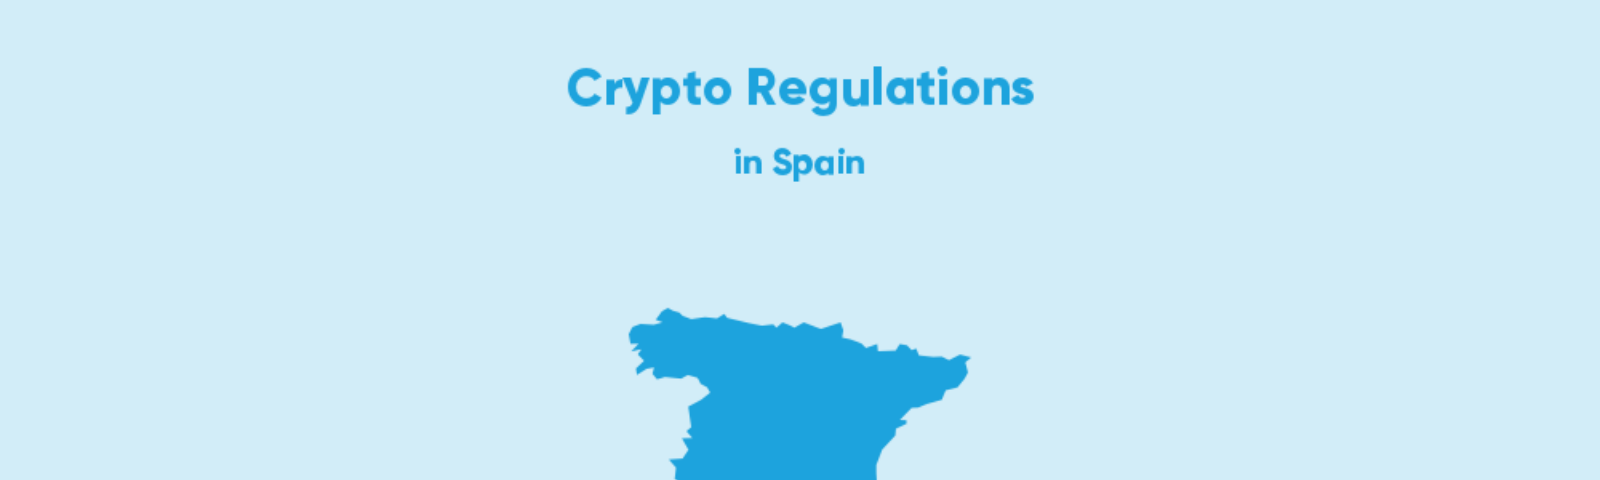 are cryptocurrency regulated